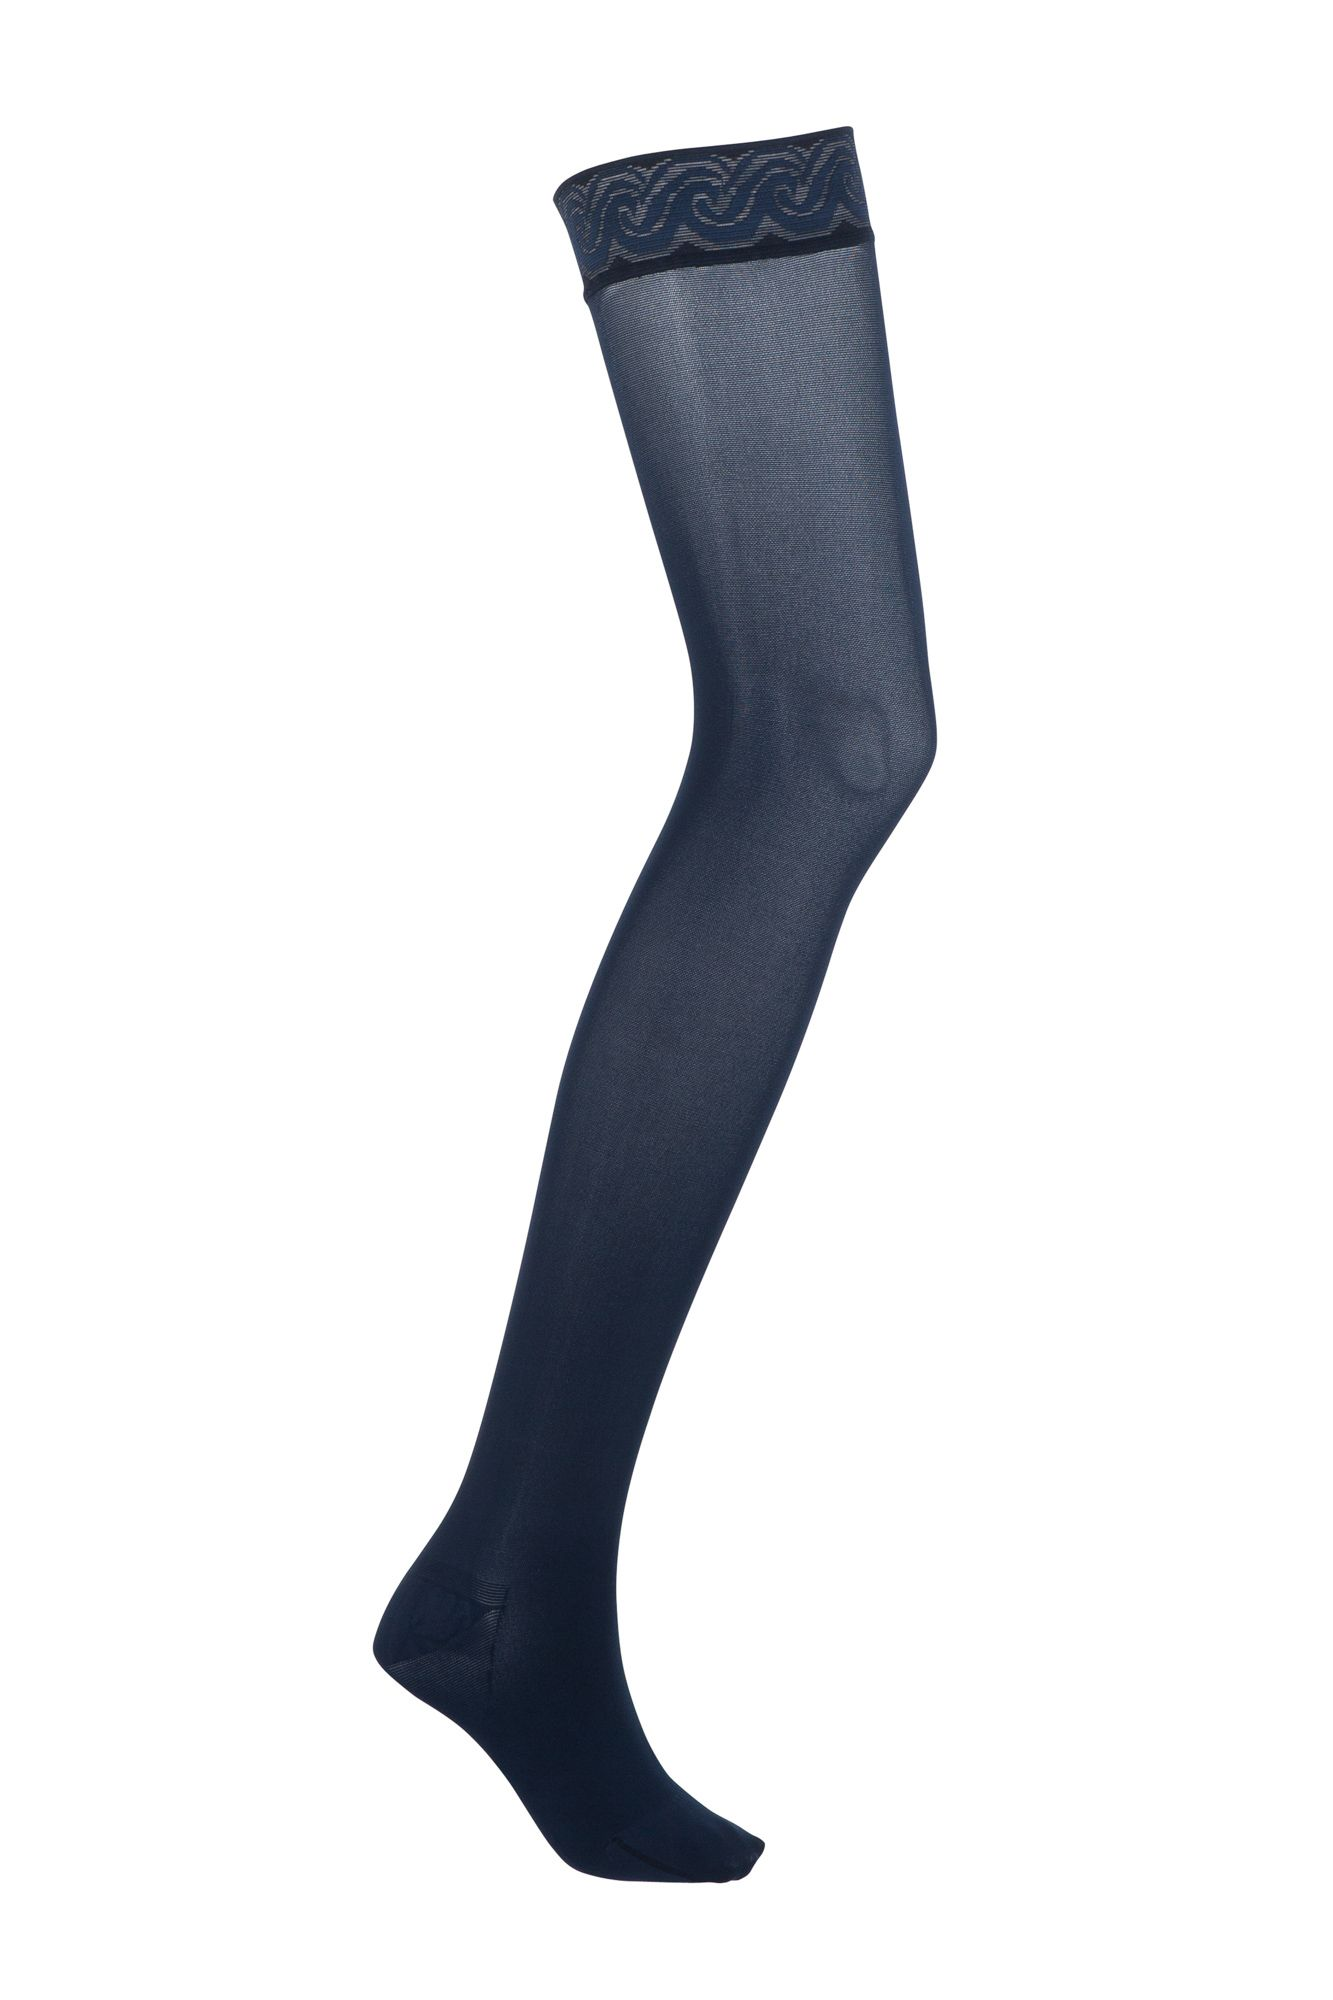 d665e4b59f5 JOBST® Opaque Class 2 Thigh Hold Up Stockings with Lace Silicone ...